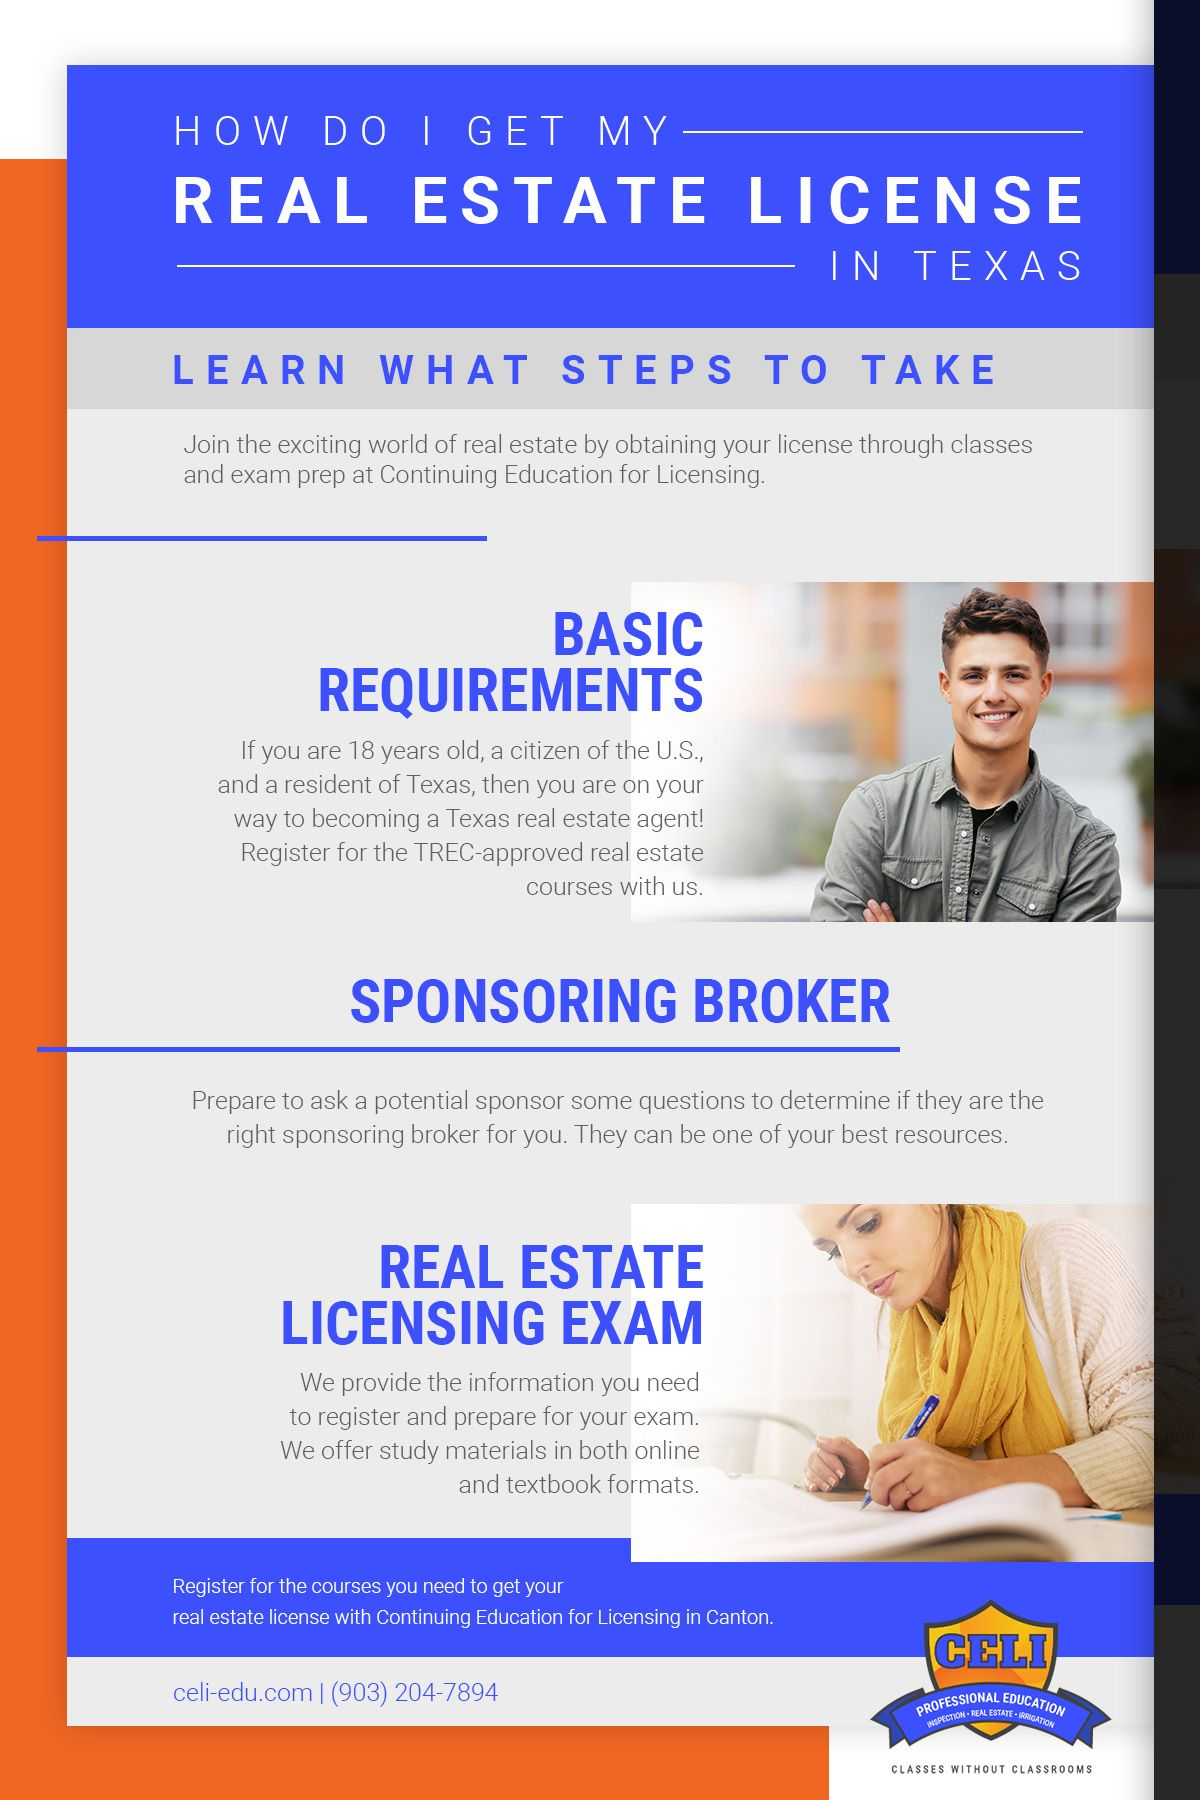 Real Estate License Canton How Do I Get My Real Estate License In Texas In 2020 Real Estate License Real Estate Courses Continuing Education